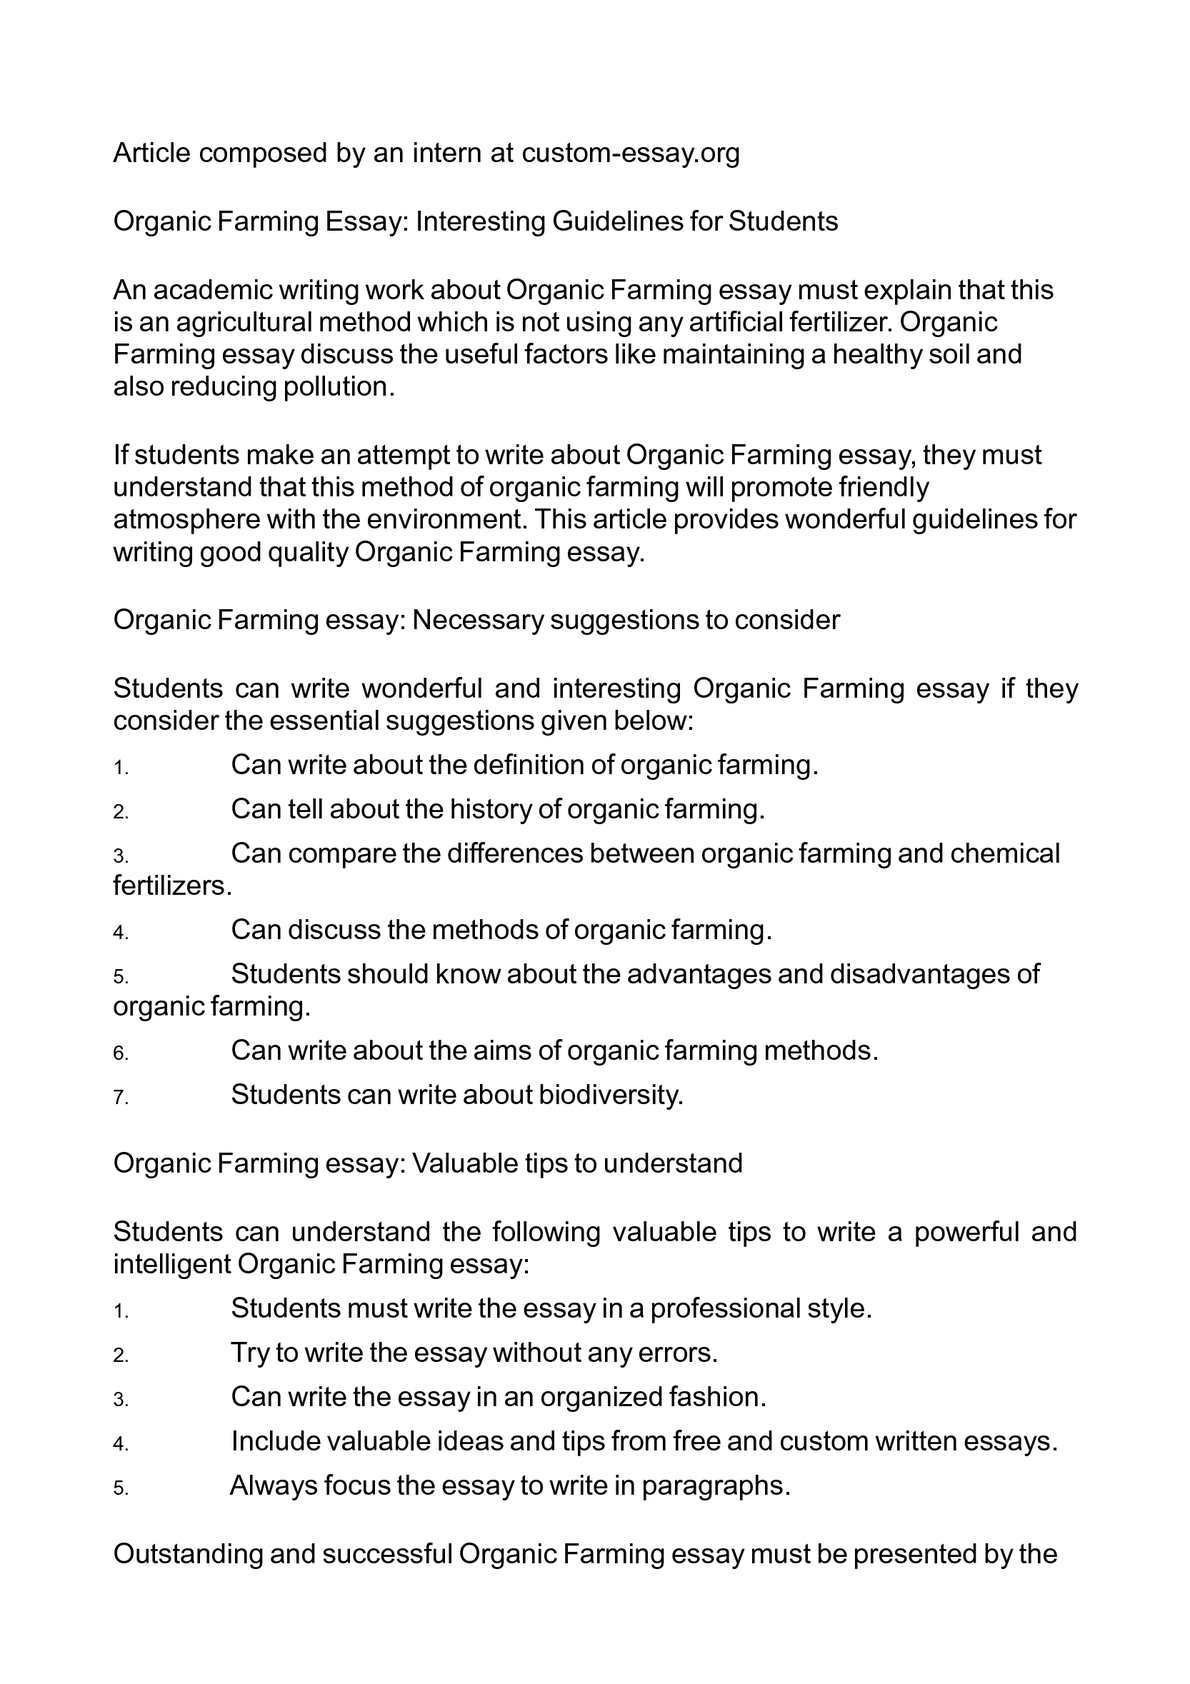 calam eacute o organic farming essay interesting guidelines for students